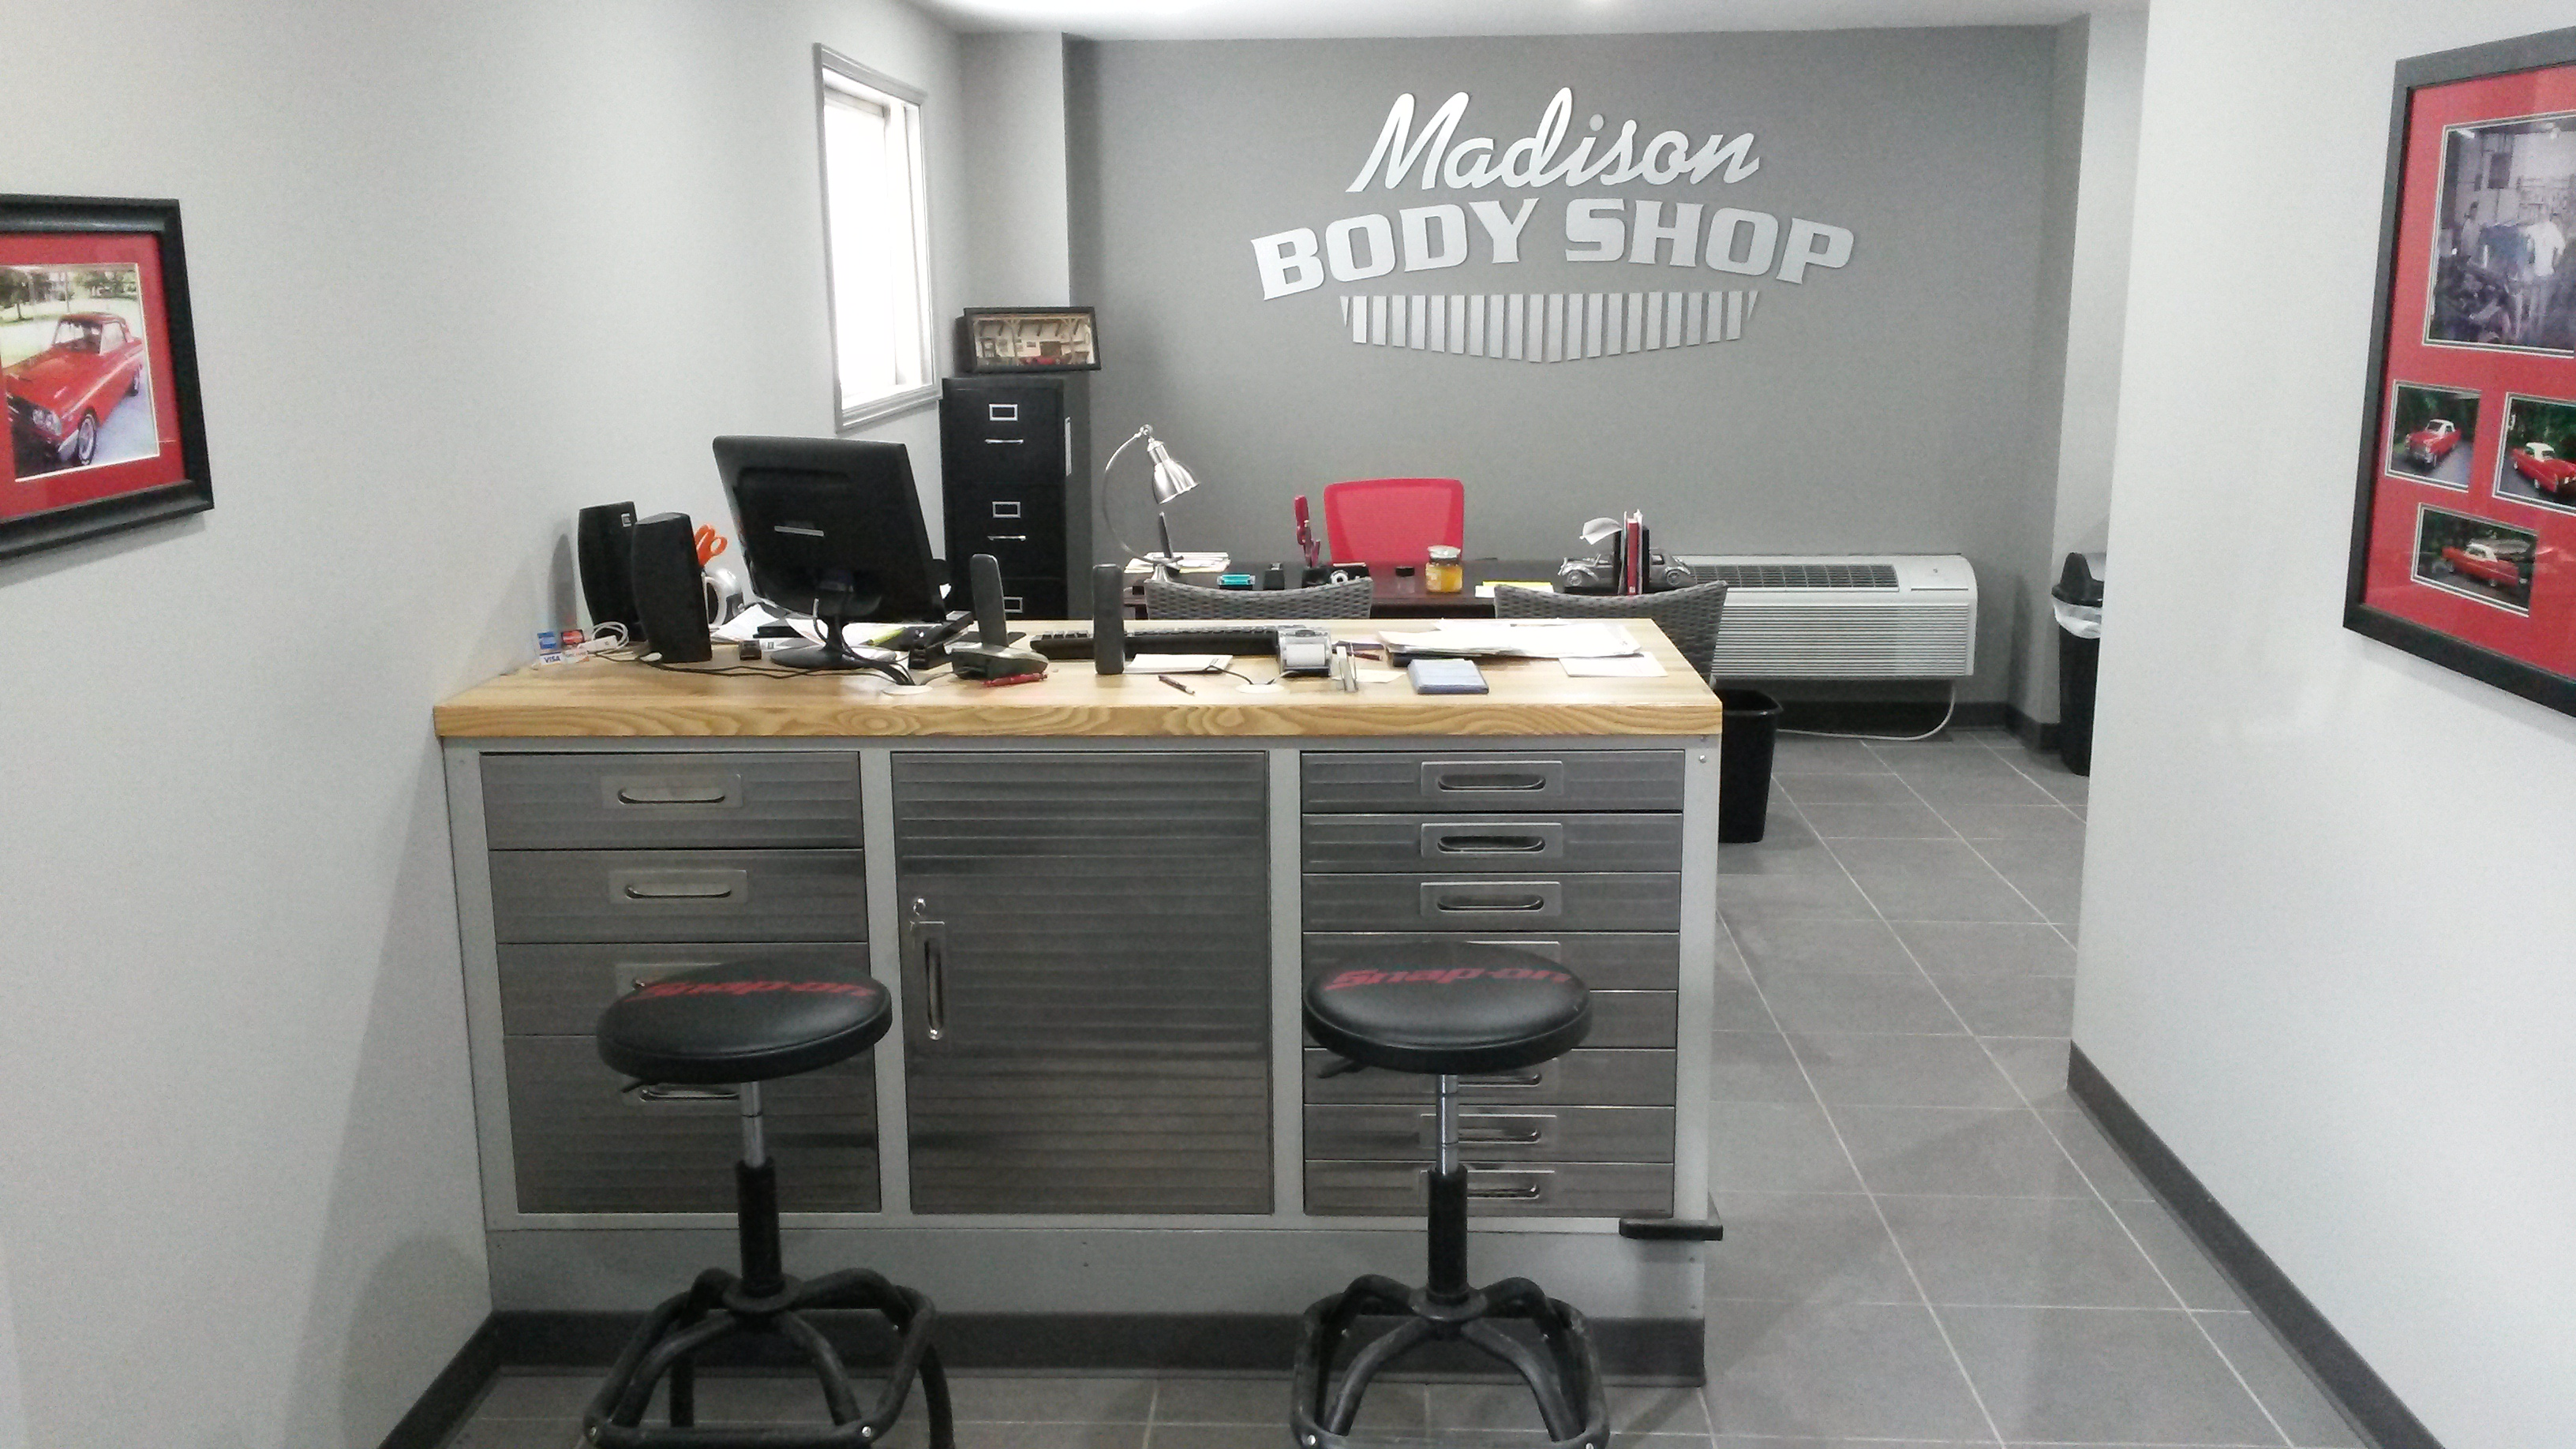 New Office for Madison TN Body Shop